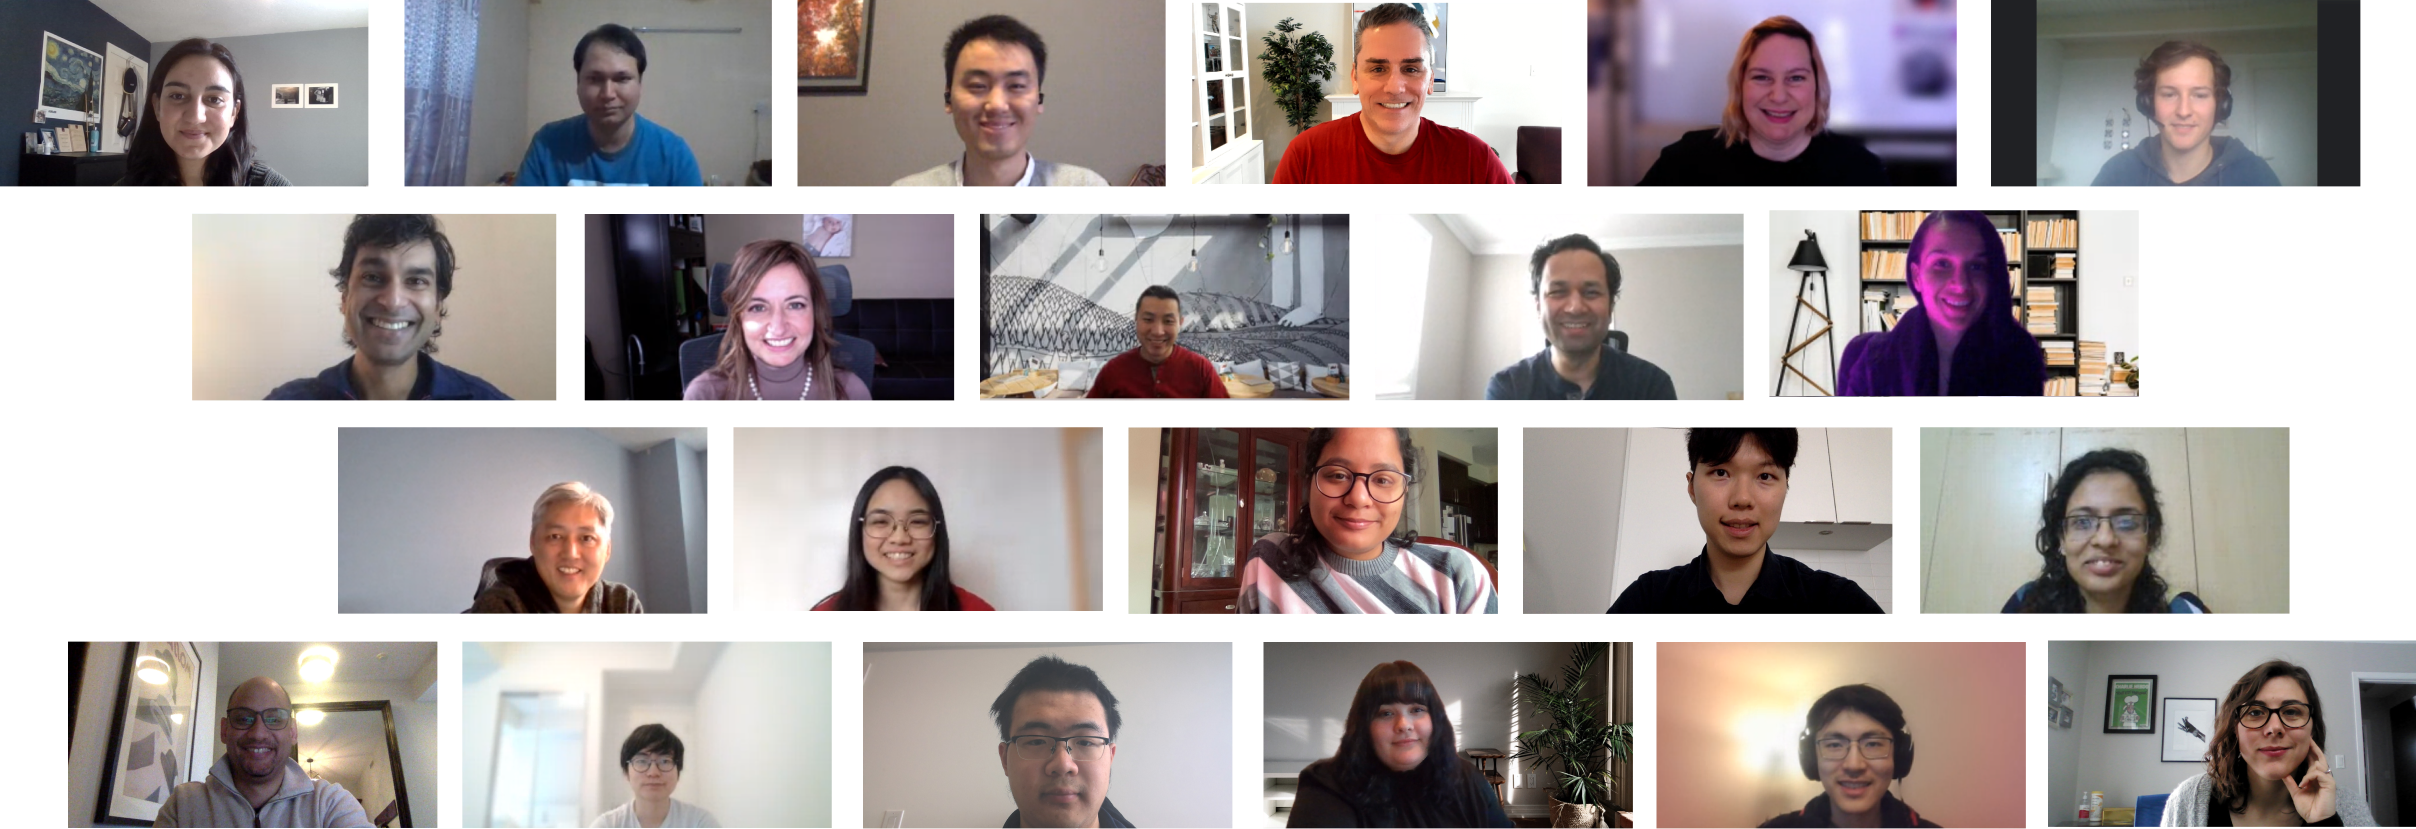 Image of the whole ODAIA team in a virtual meeting